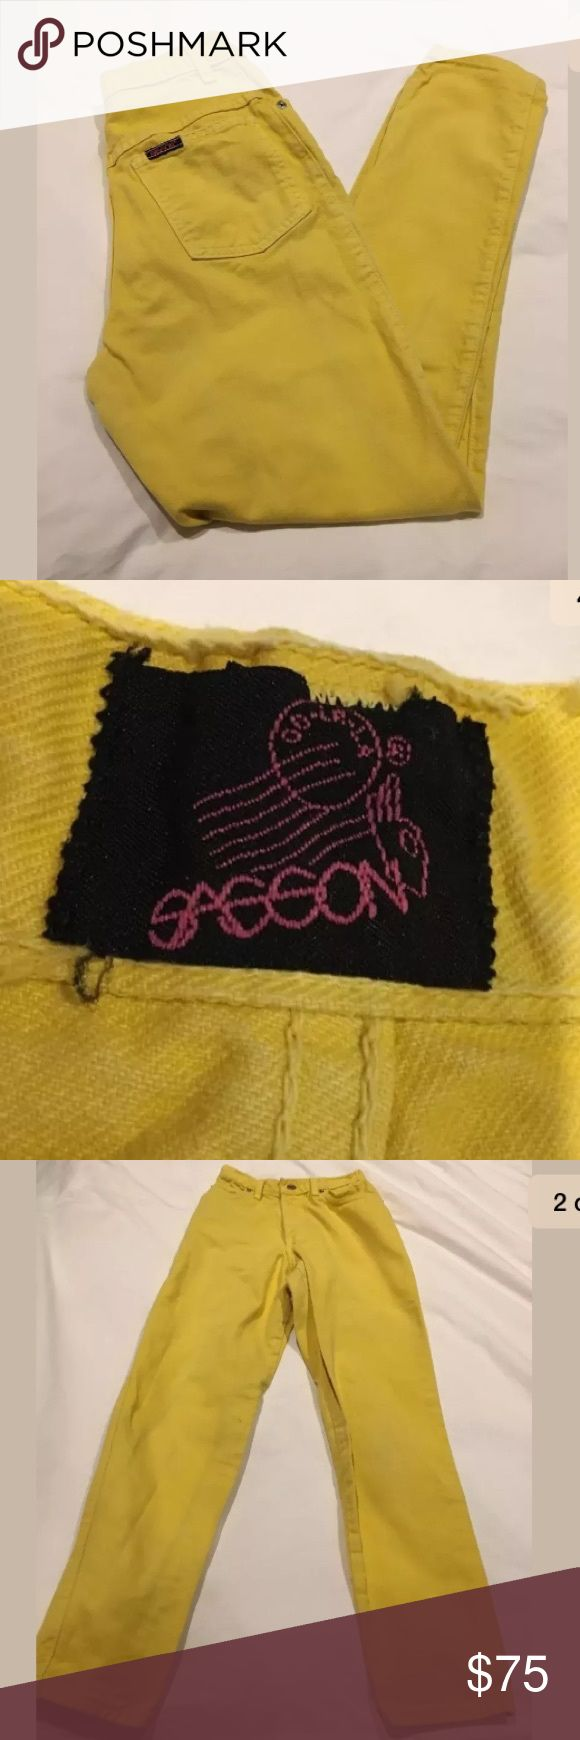 Vintage Yellow Sasson High Waist Tapered Jeans Vintage Yellow Sasson High Waist Tapered Jeans Size 7  So Stylish Vintage Sasson Jeans!  High Waist, Tapered   Yellow in color Zip Fly 5 Pocket  SASSON BRAND  Cut off for shorts or wear as is 90's hip hop  Some small stains are pictured. Sasson Jeans Jeans